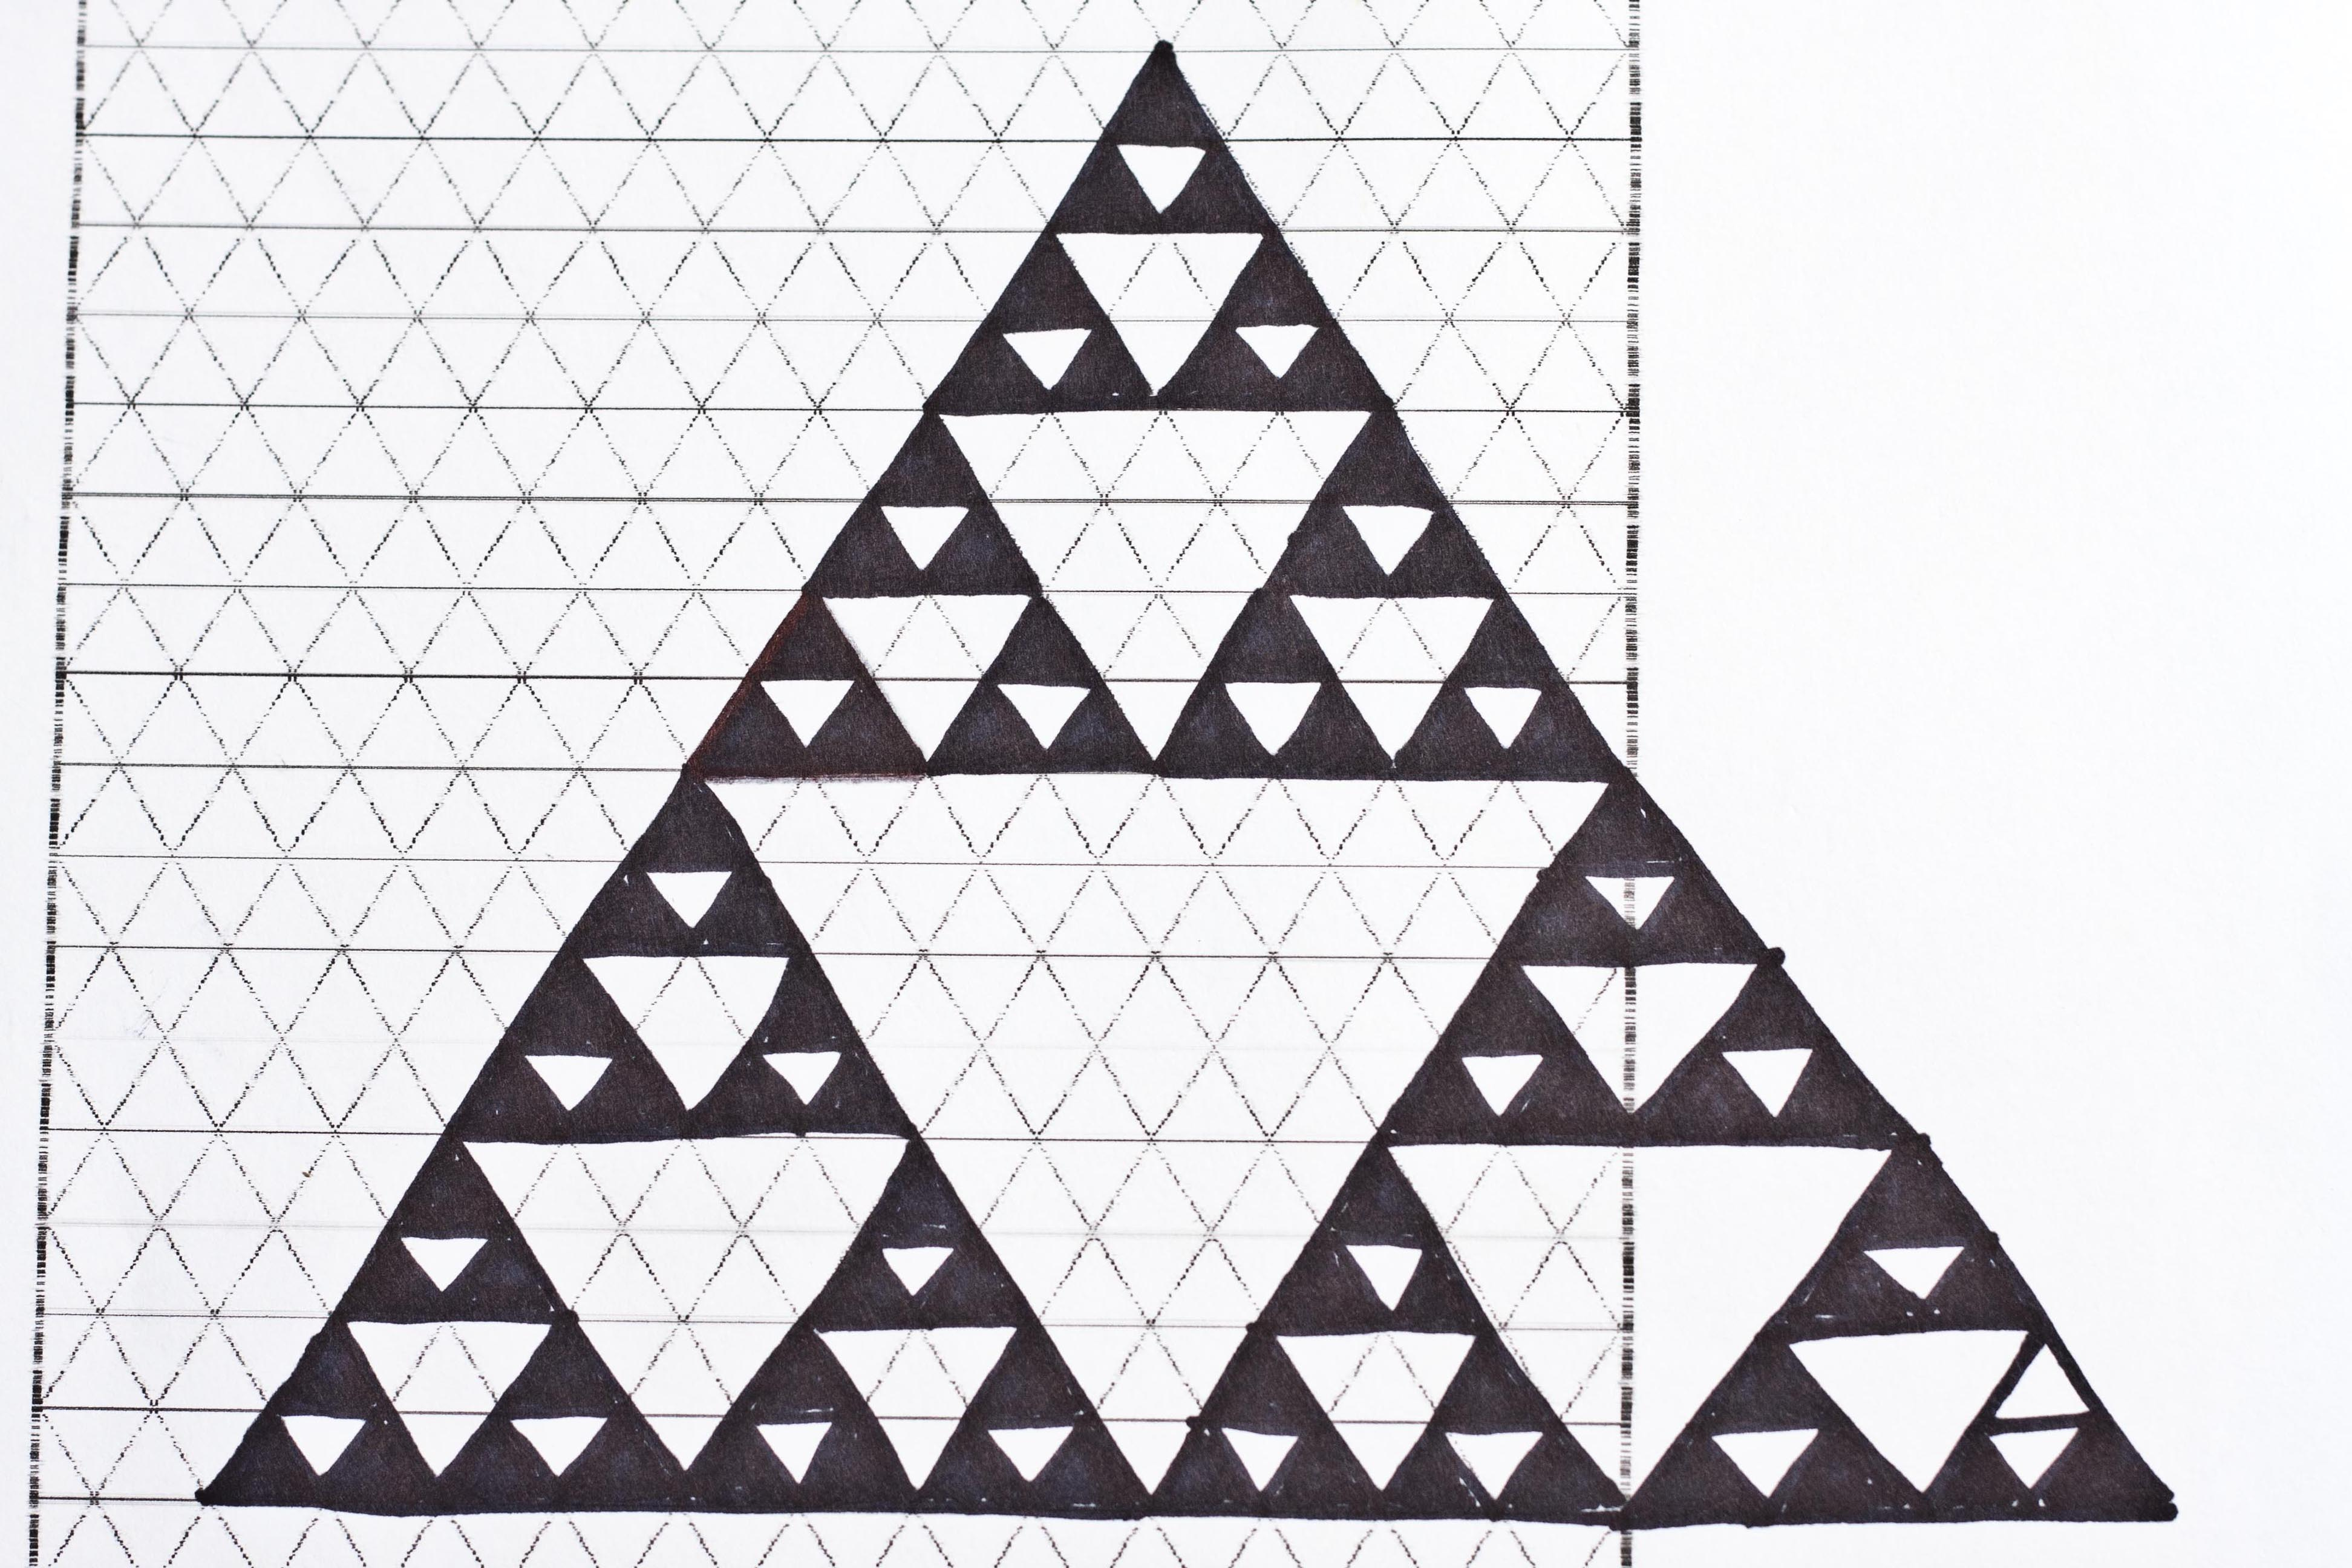 How to Make a Sierpinski Triangle: 8 Steps (with Pictures)